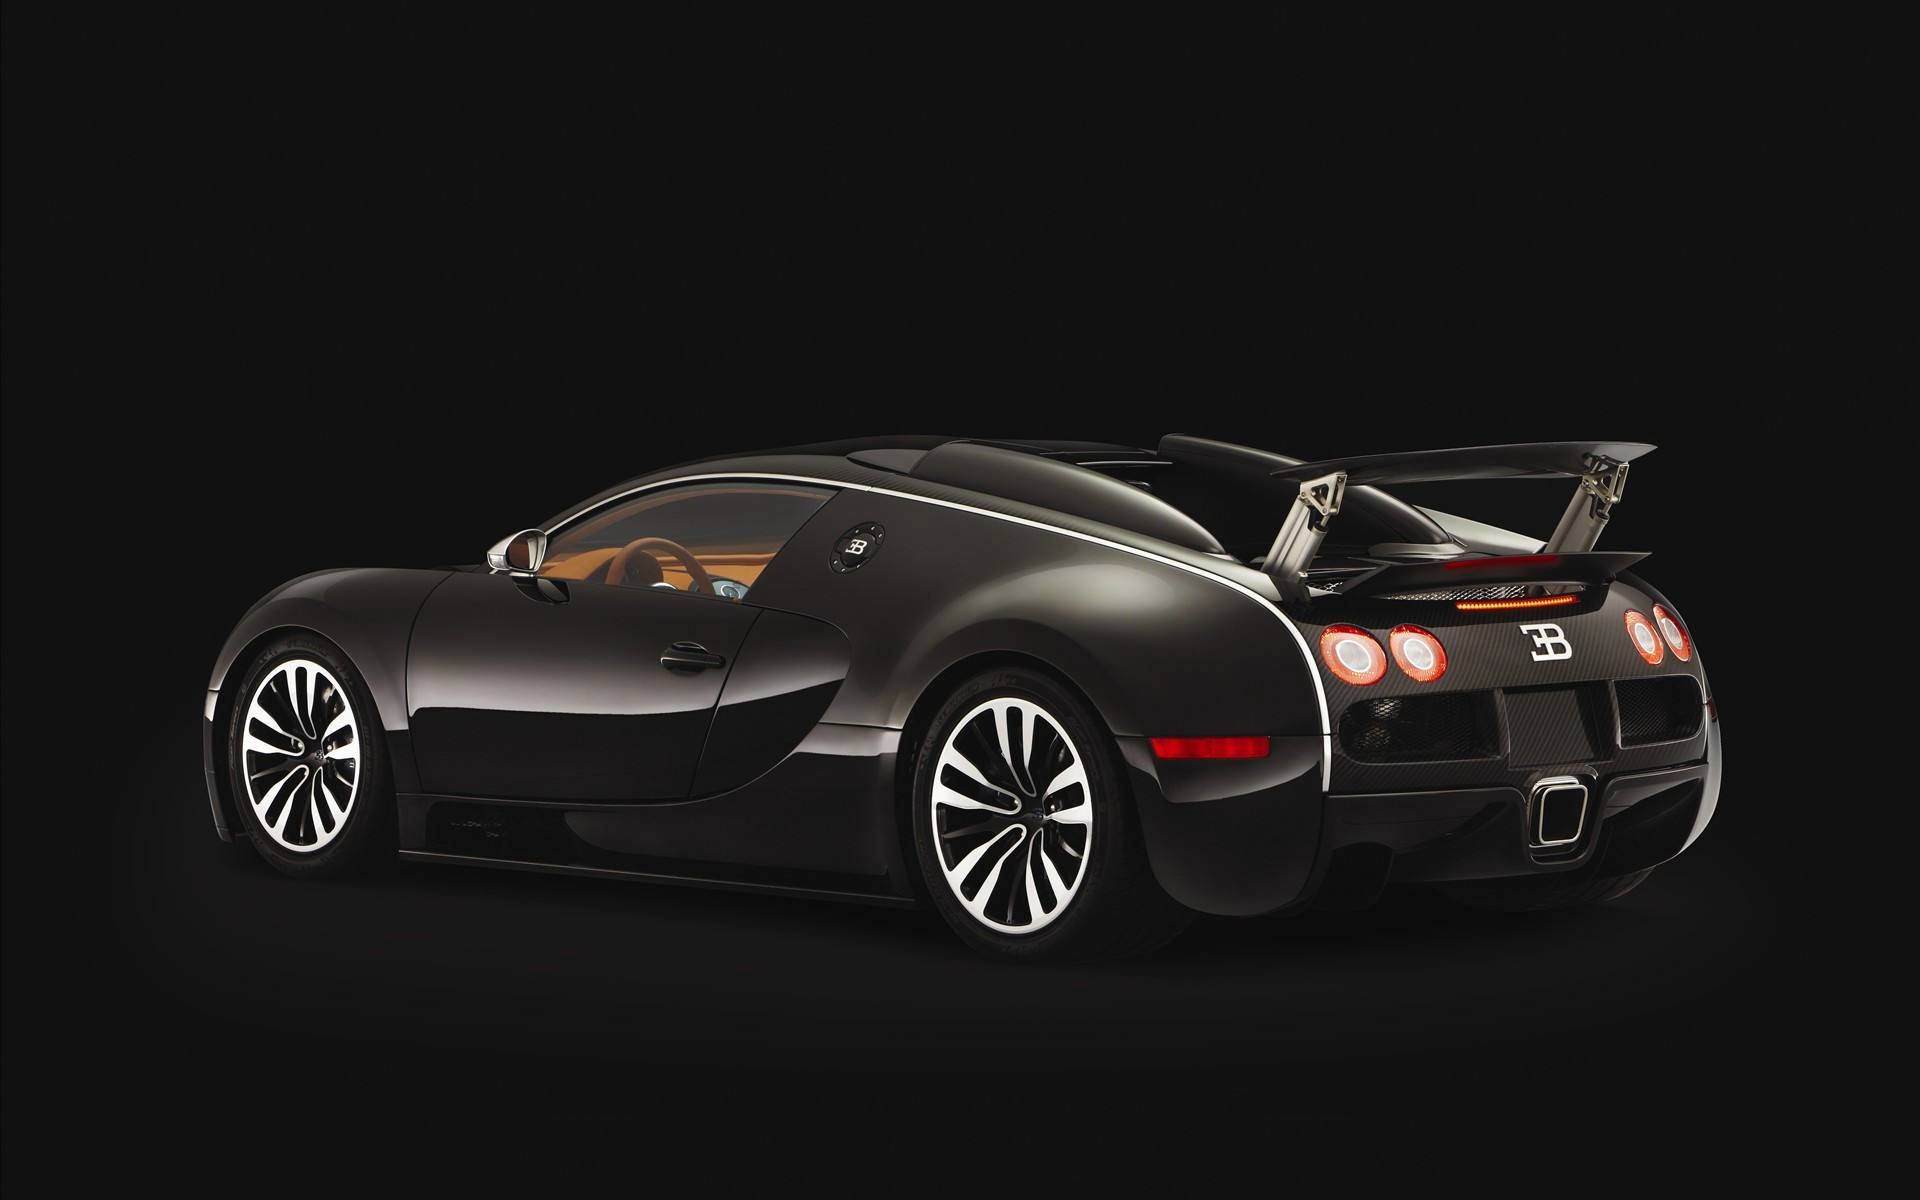 Black Bugatti Veyron HD Wallpapers 1920x1200